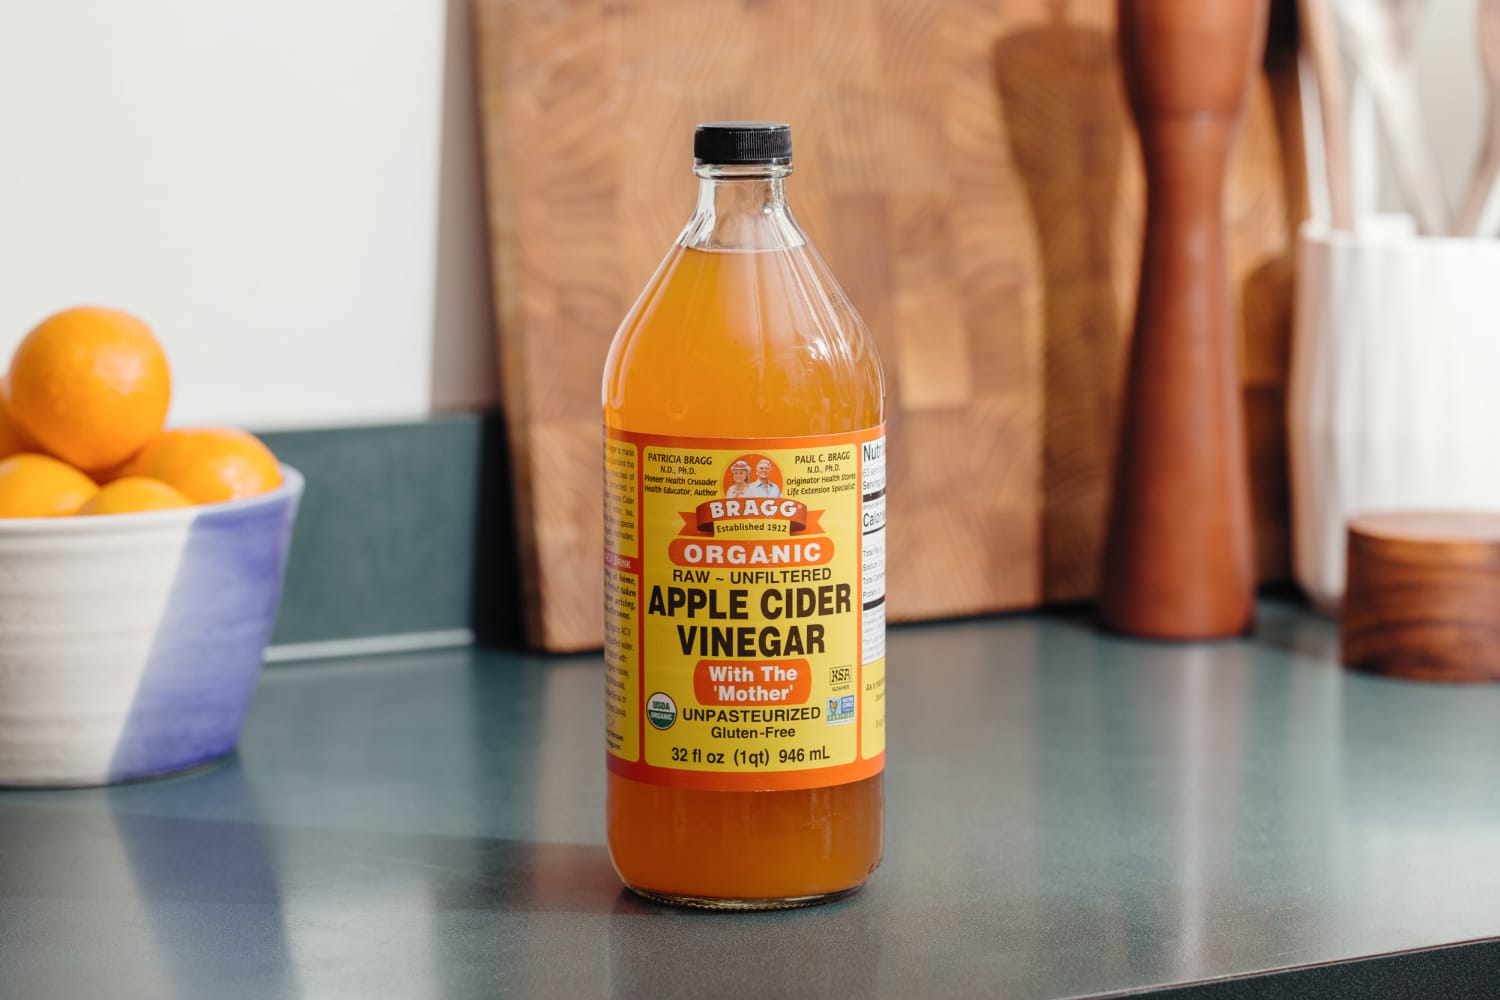 The First Thing You Should Do with a New Bottle of Apple Cider Vinegar